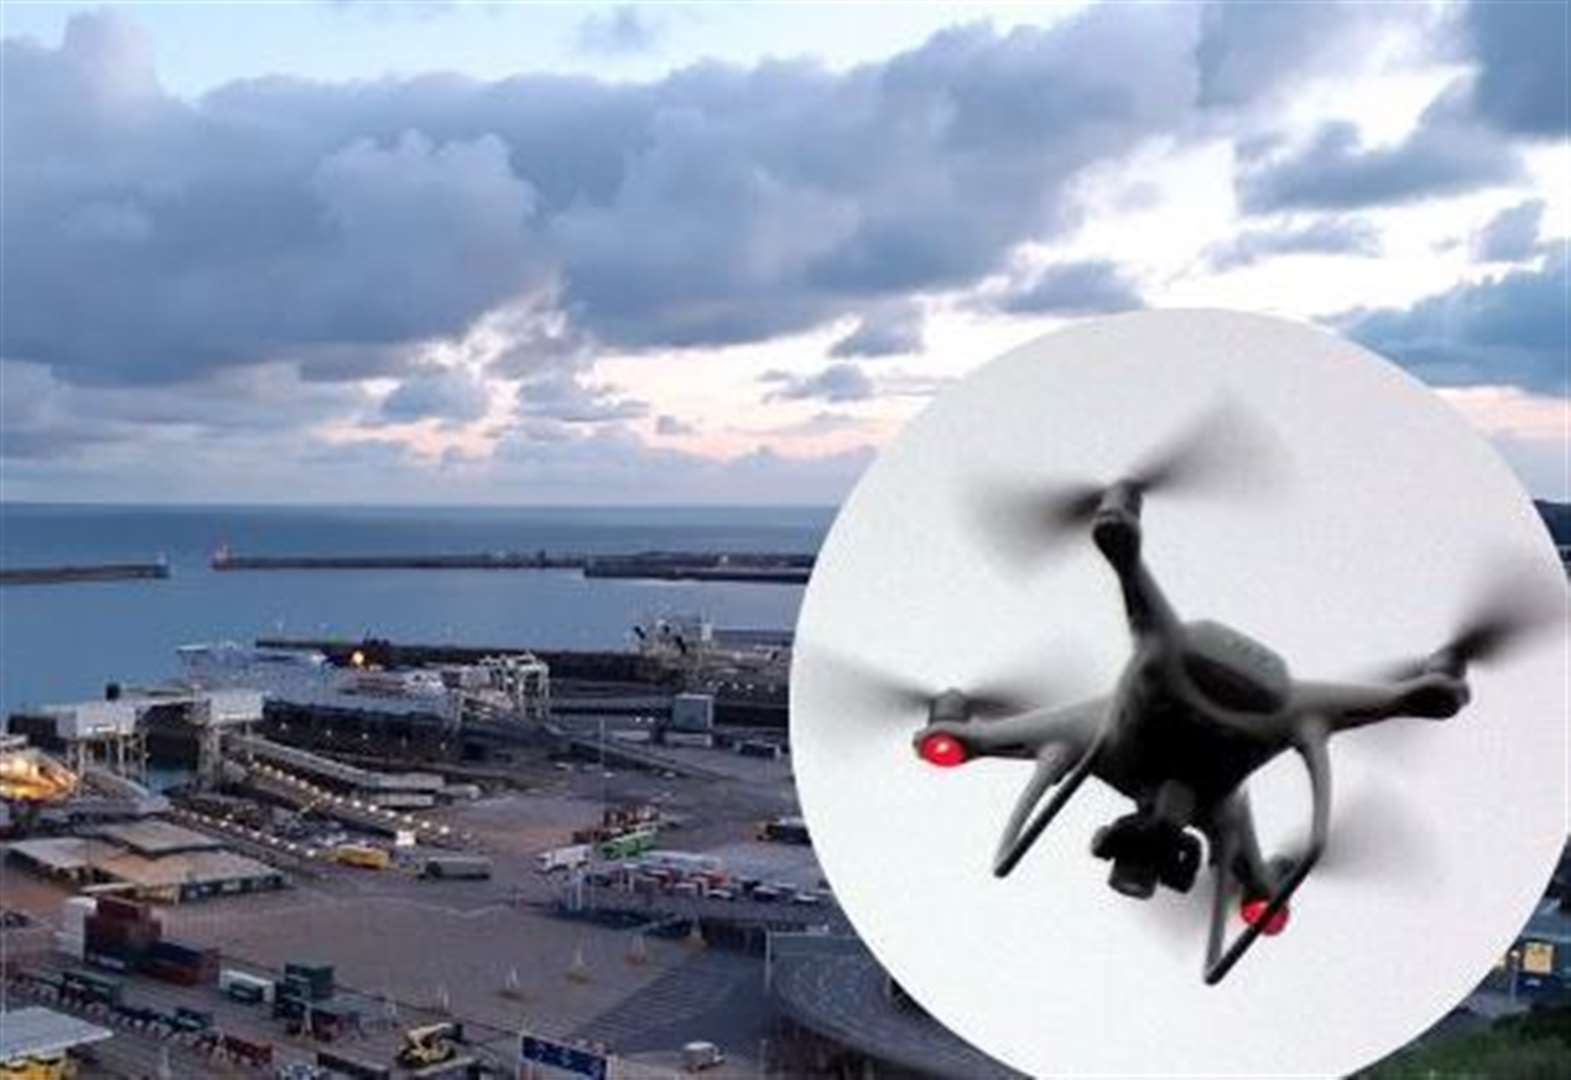 Drones banned from flying near port